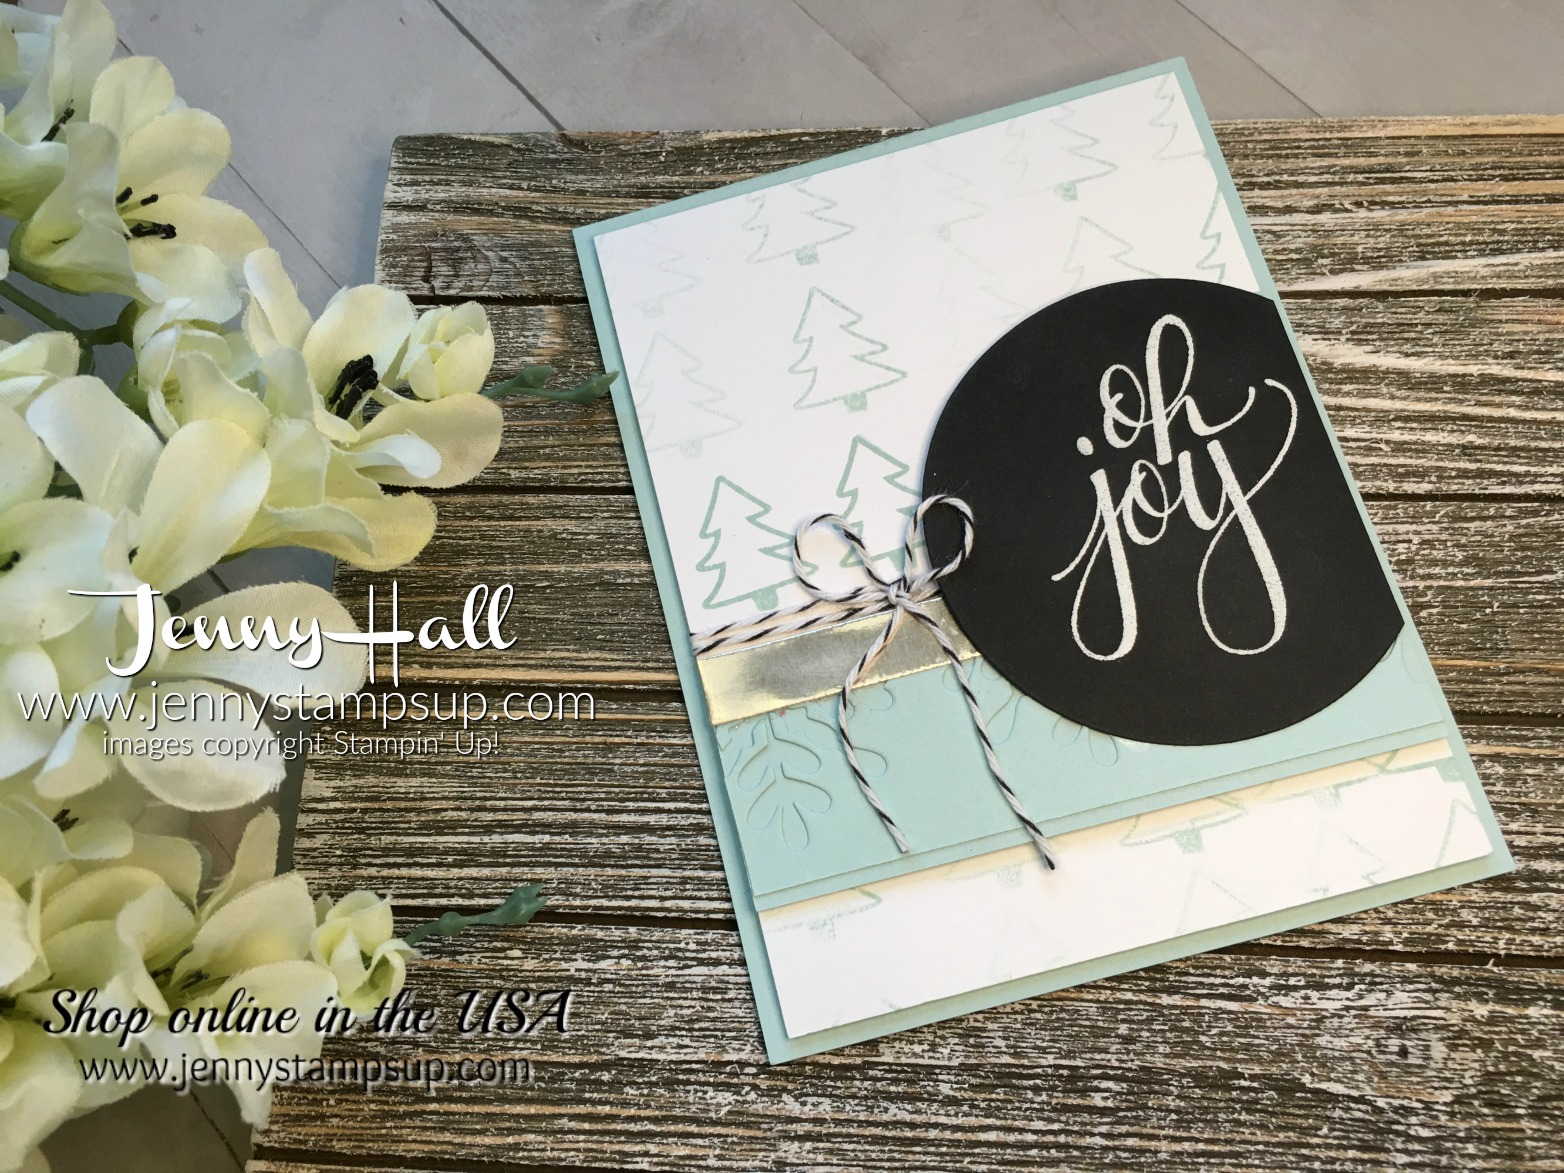 Chalkboard technique card by Jenny Hall at www.jennyhalldesign.com for cardmaking techniques, tutorials, scrapbooking and more!